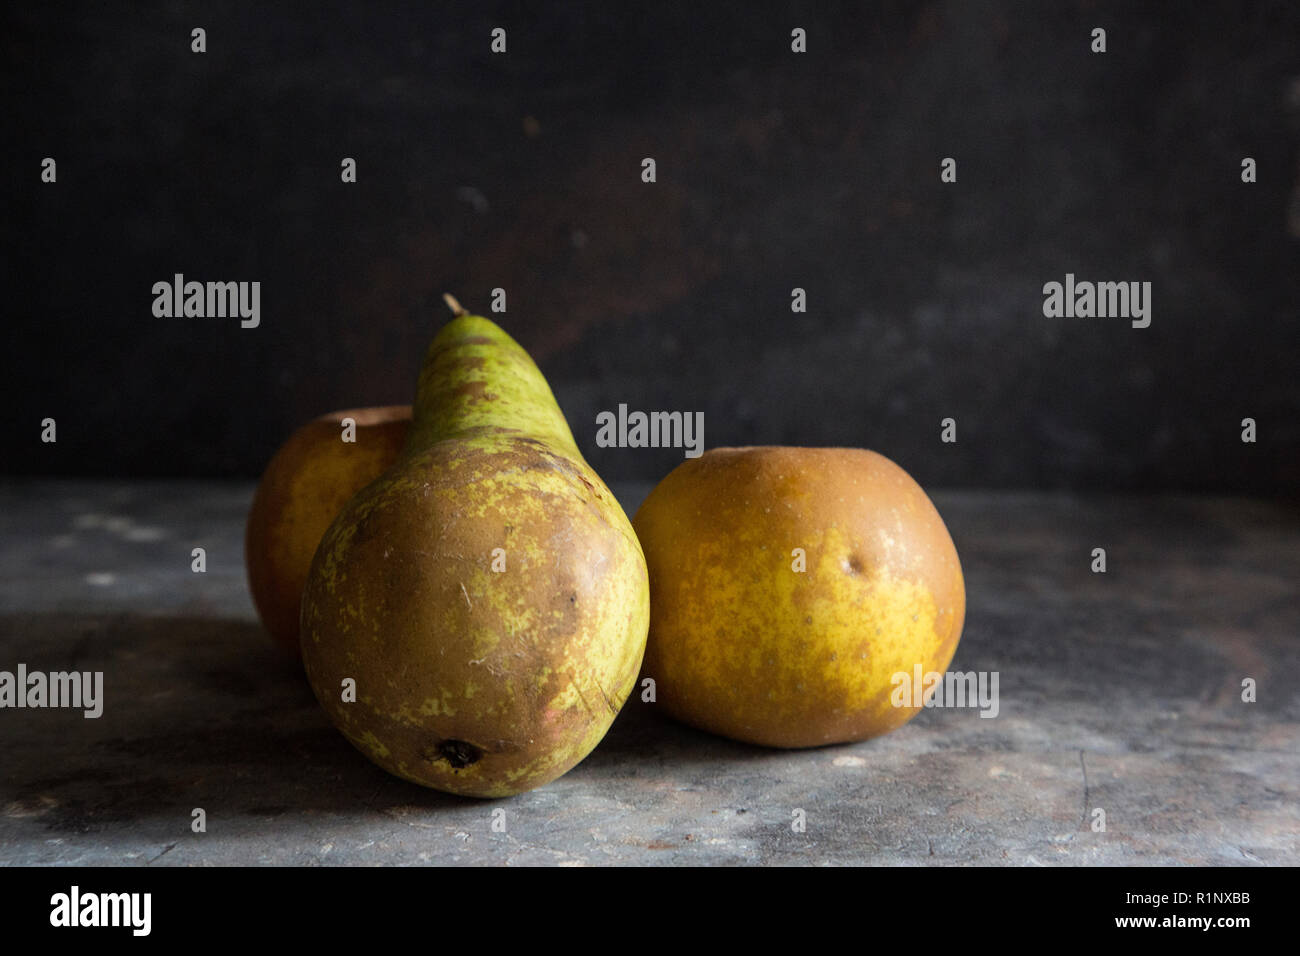 a pear and two russett apples on a grey textured background with darker lighting creating a moody dark feel to the image Stock Photo